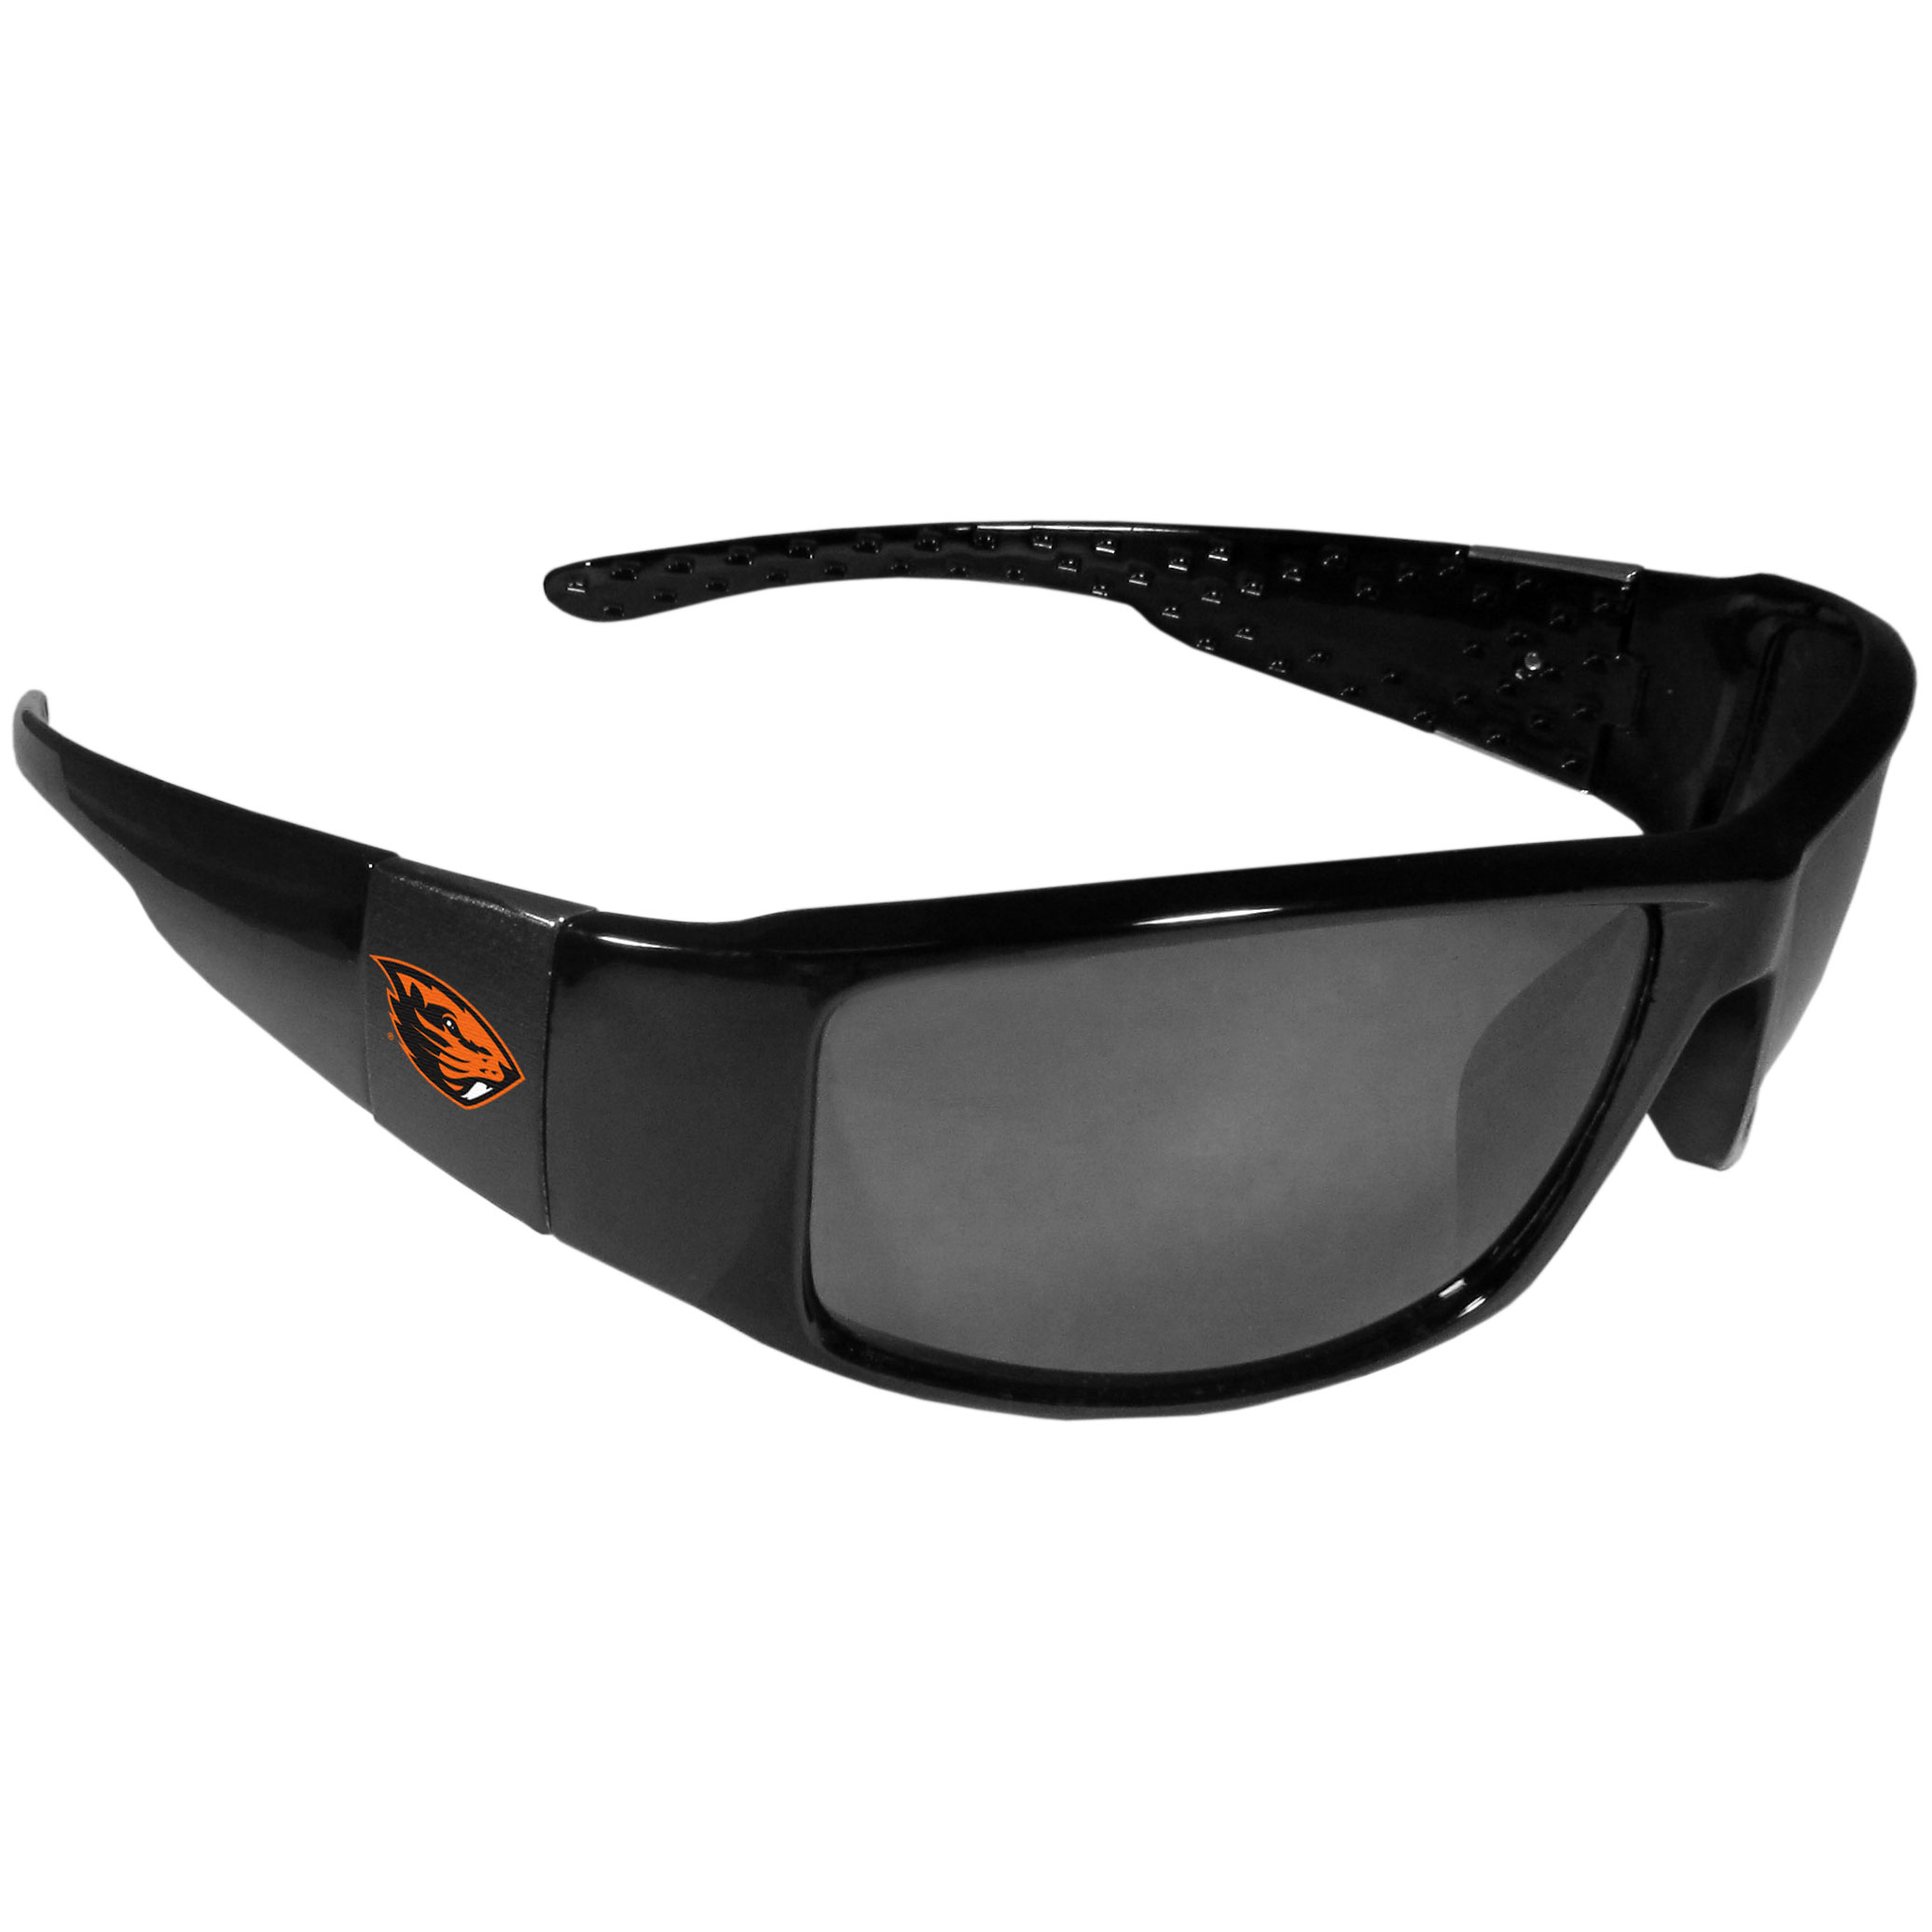 Oregon St. Beavers Black Wrap Sunglasses - These designer inspired frames have a sleek look in all black with  Oregon St. Beavers shields on each arm with a printed logo. The shades are perfect for any outdoor activity like; golfing, driving, hiking, fishing or cheering on the team at a tailgating event or at a home game day BBQ with a lens rating of 100% UVA/UVB for maximum UV protection. The high-quality frames are as durable as they are fashionable and with their classic look they are the perfect fan accessory that can be worn everyday for every occasion.